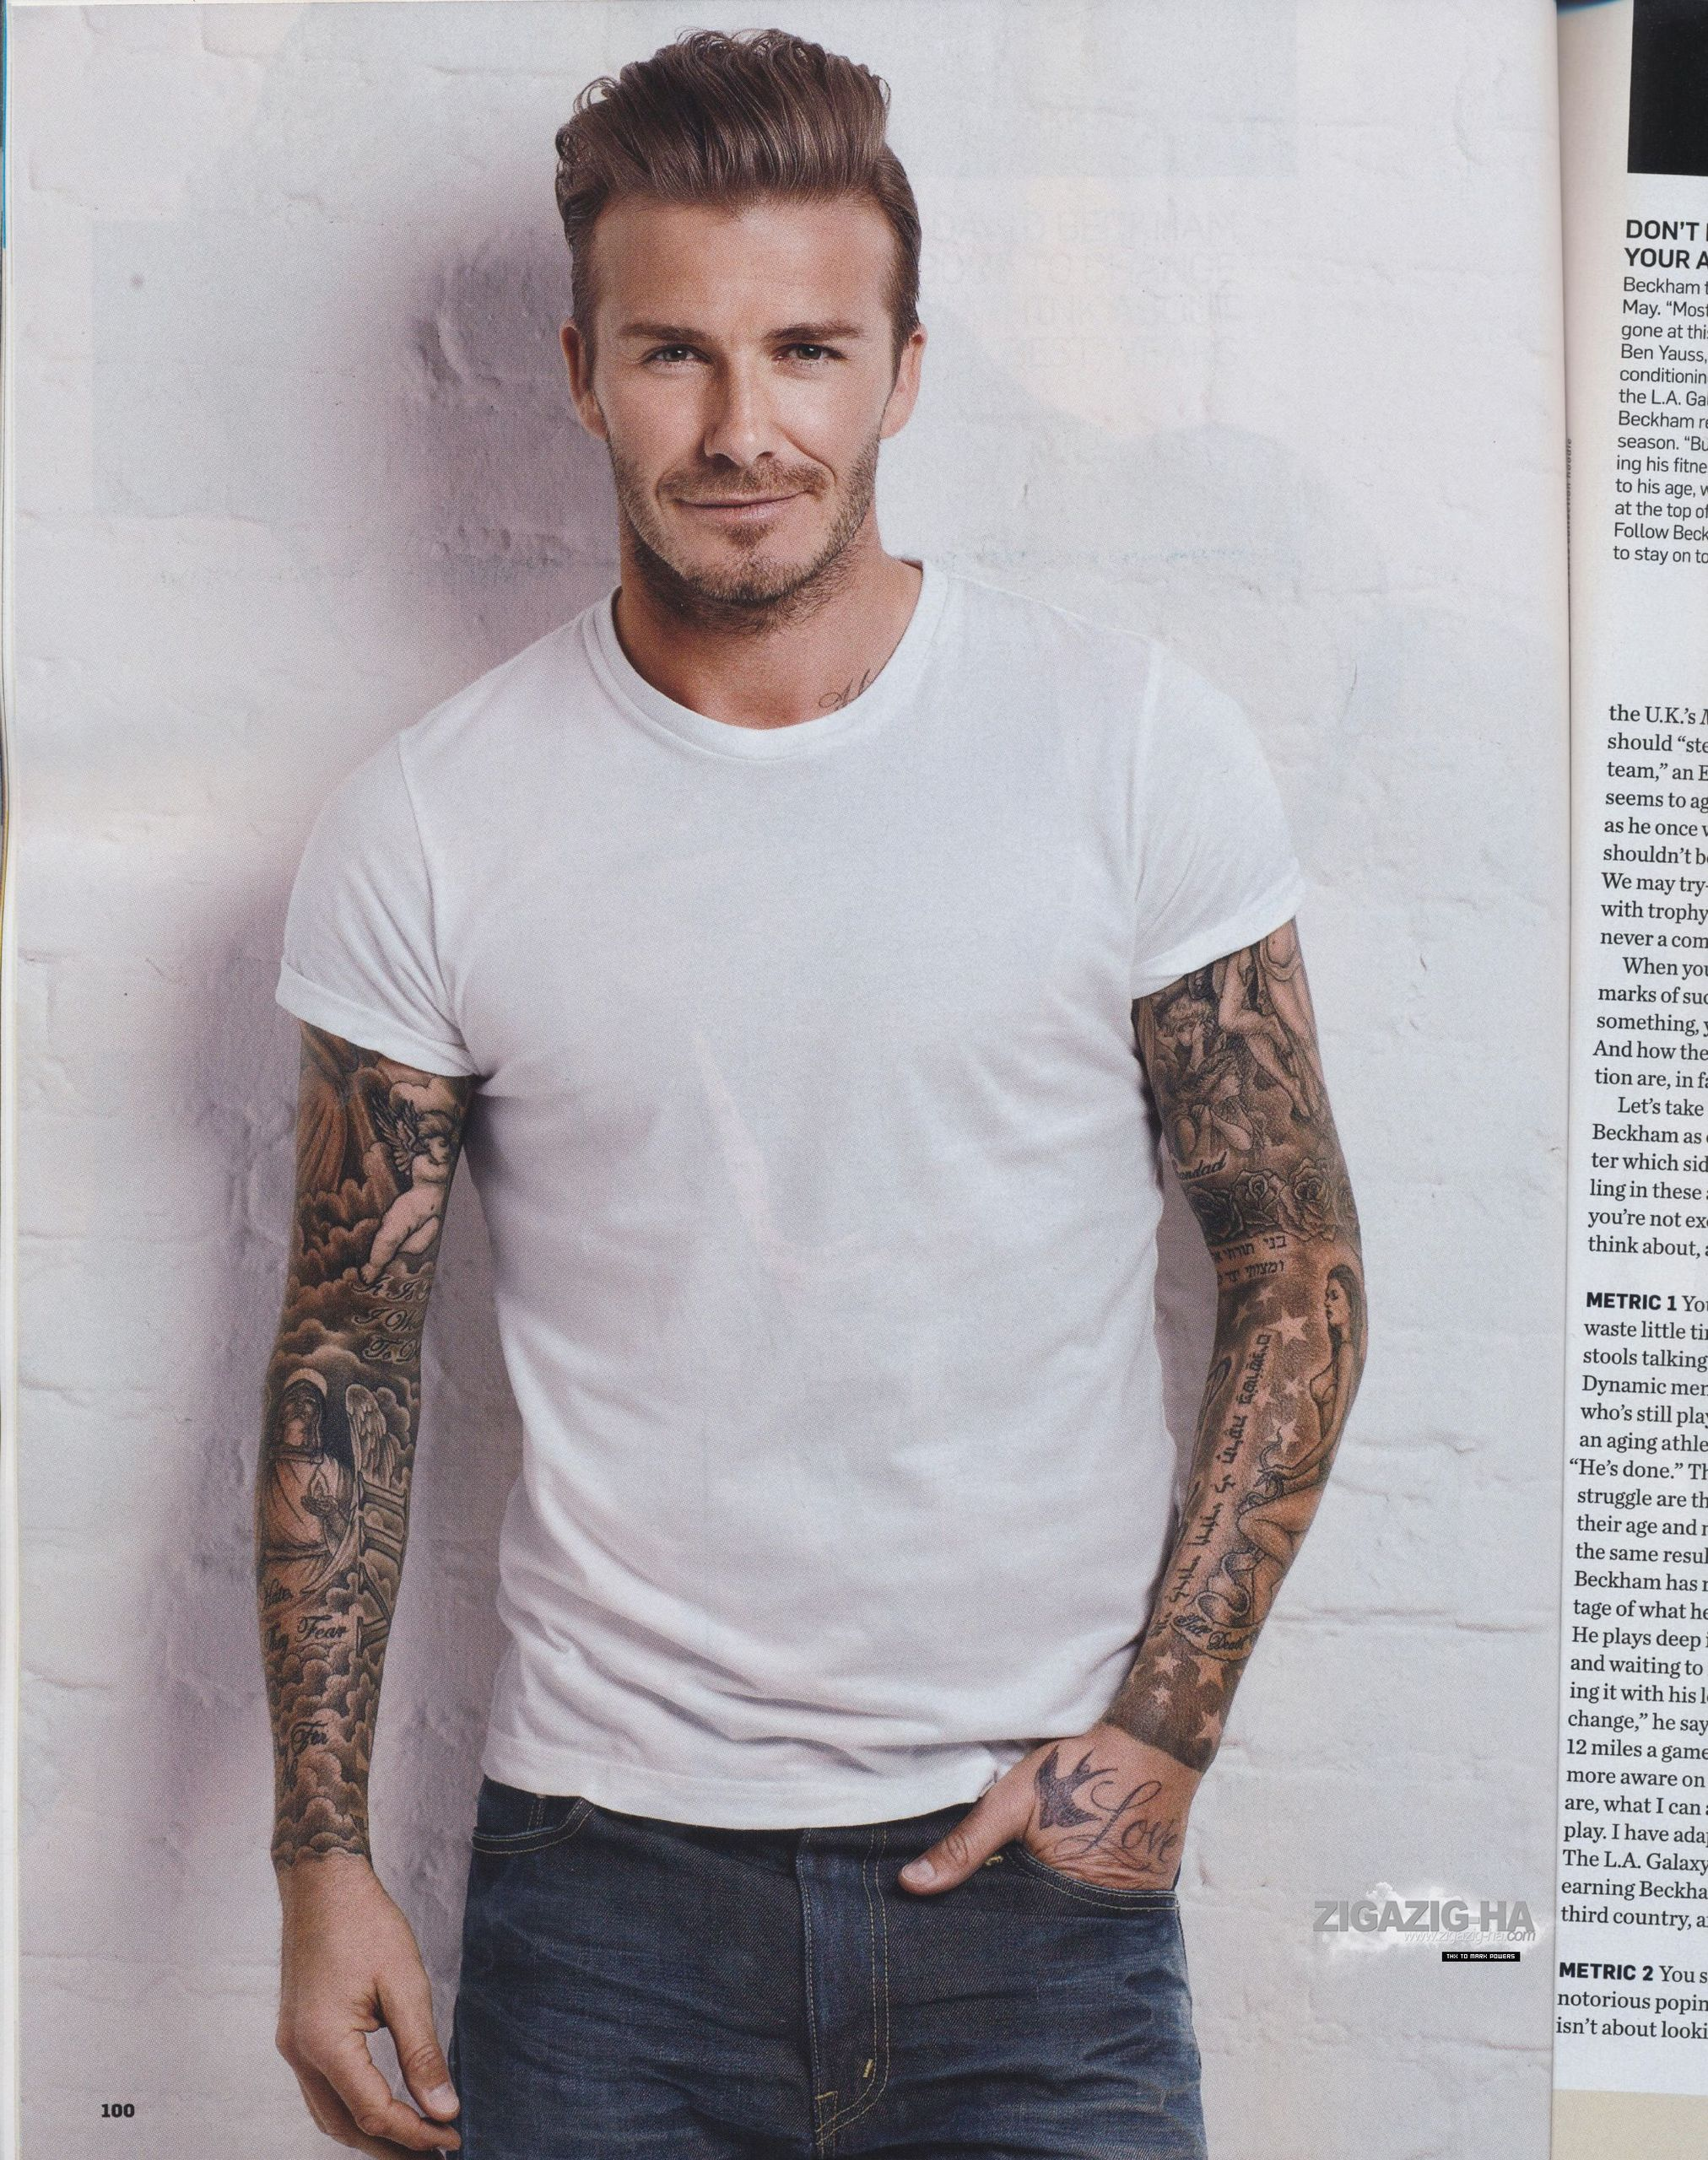 David Men S Health March 2012 David Beckham Photo